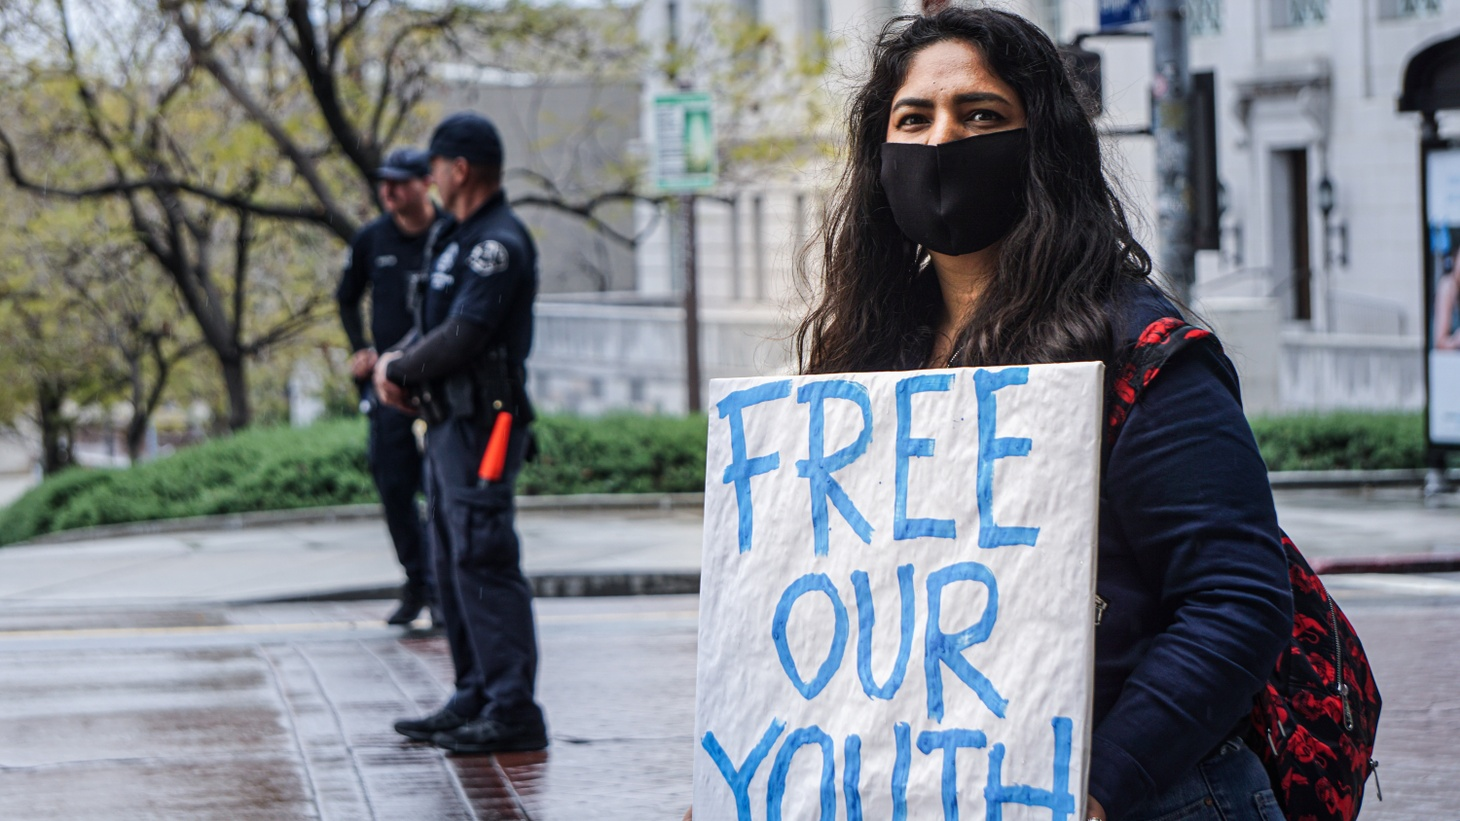 Protester advocating for jailed youth.